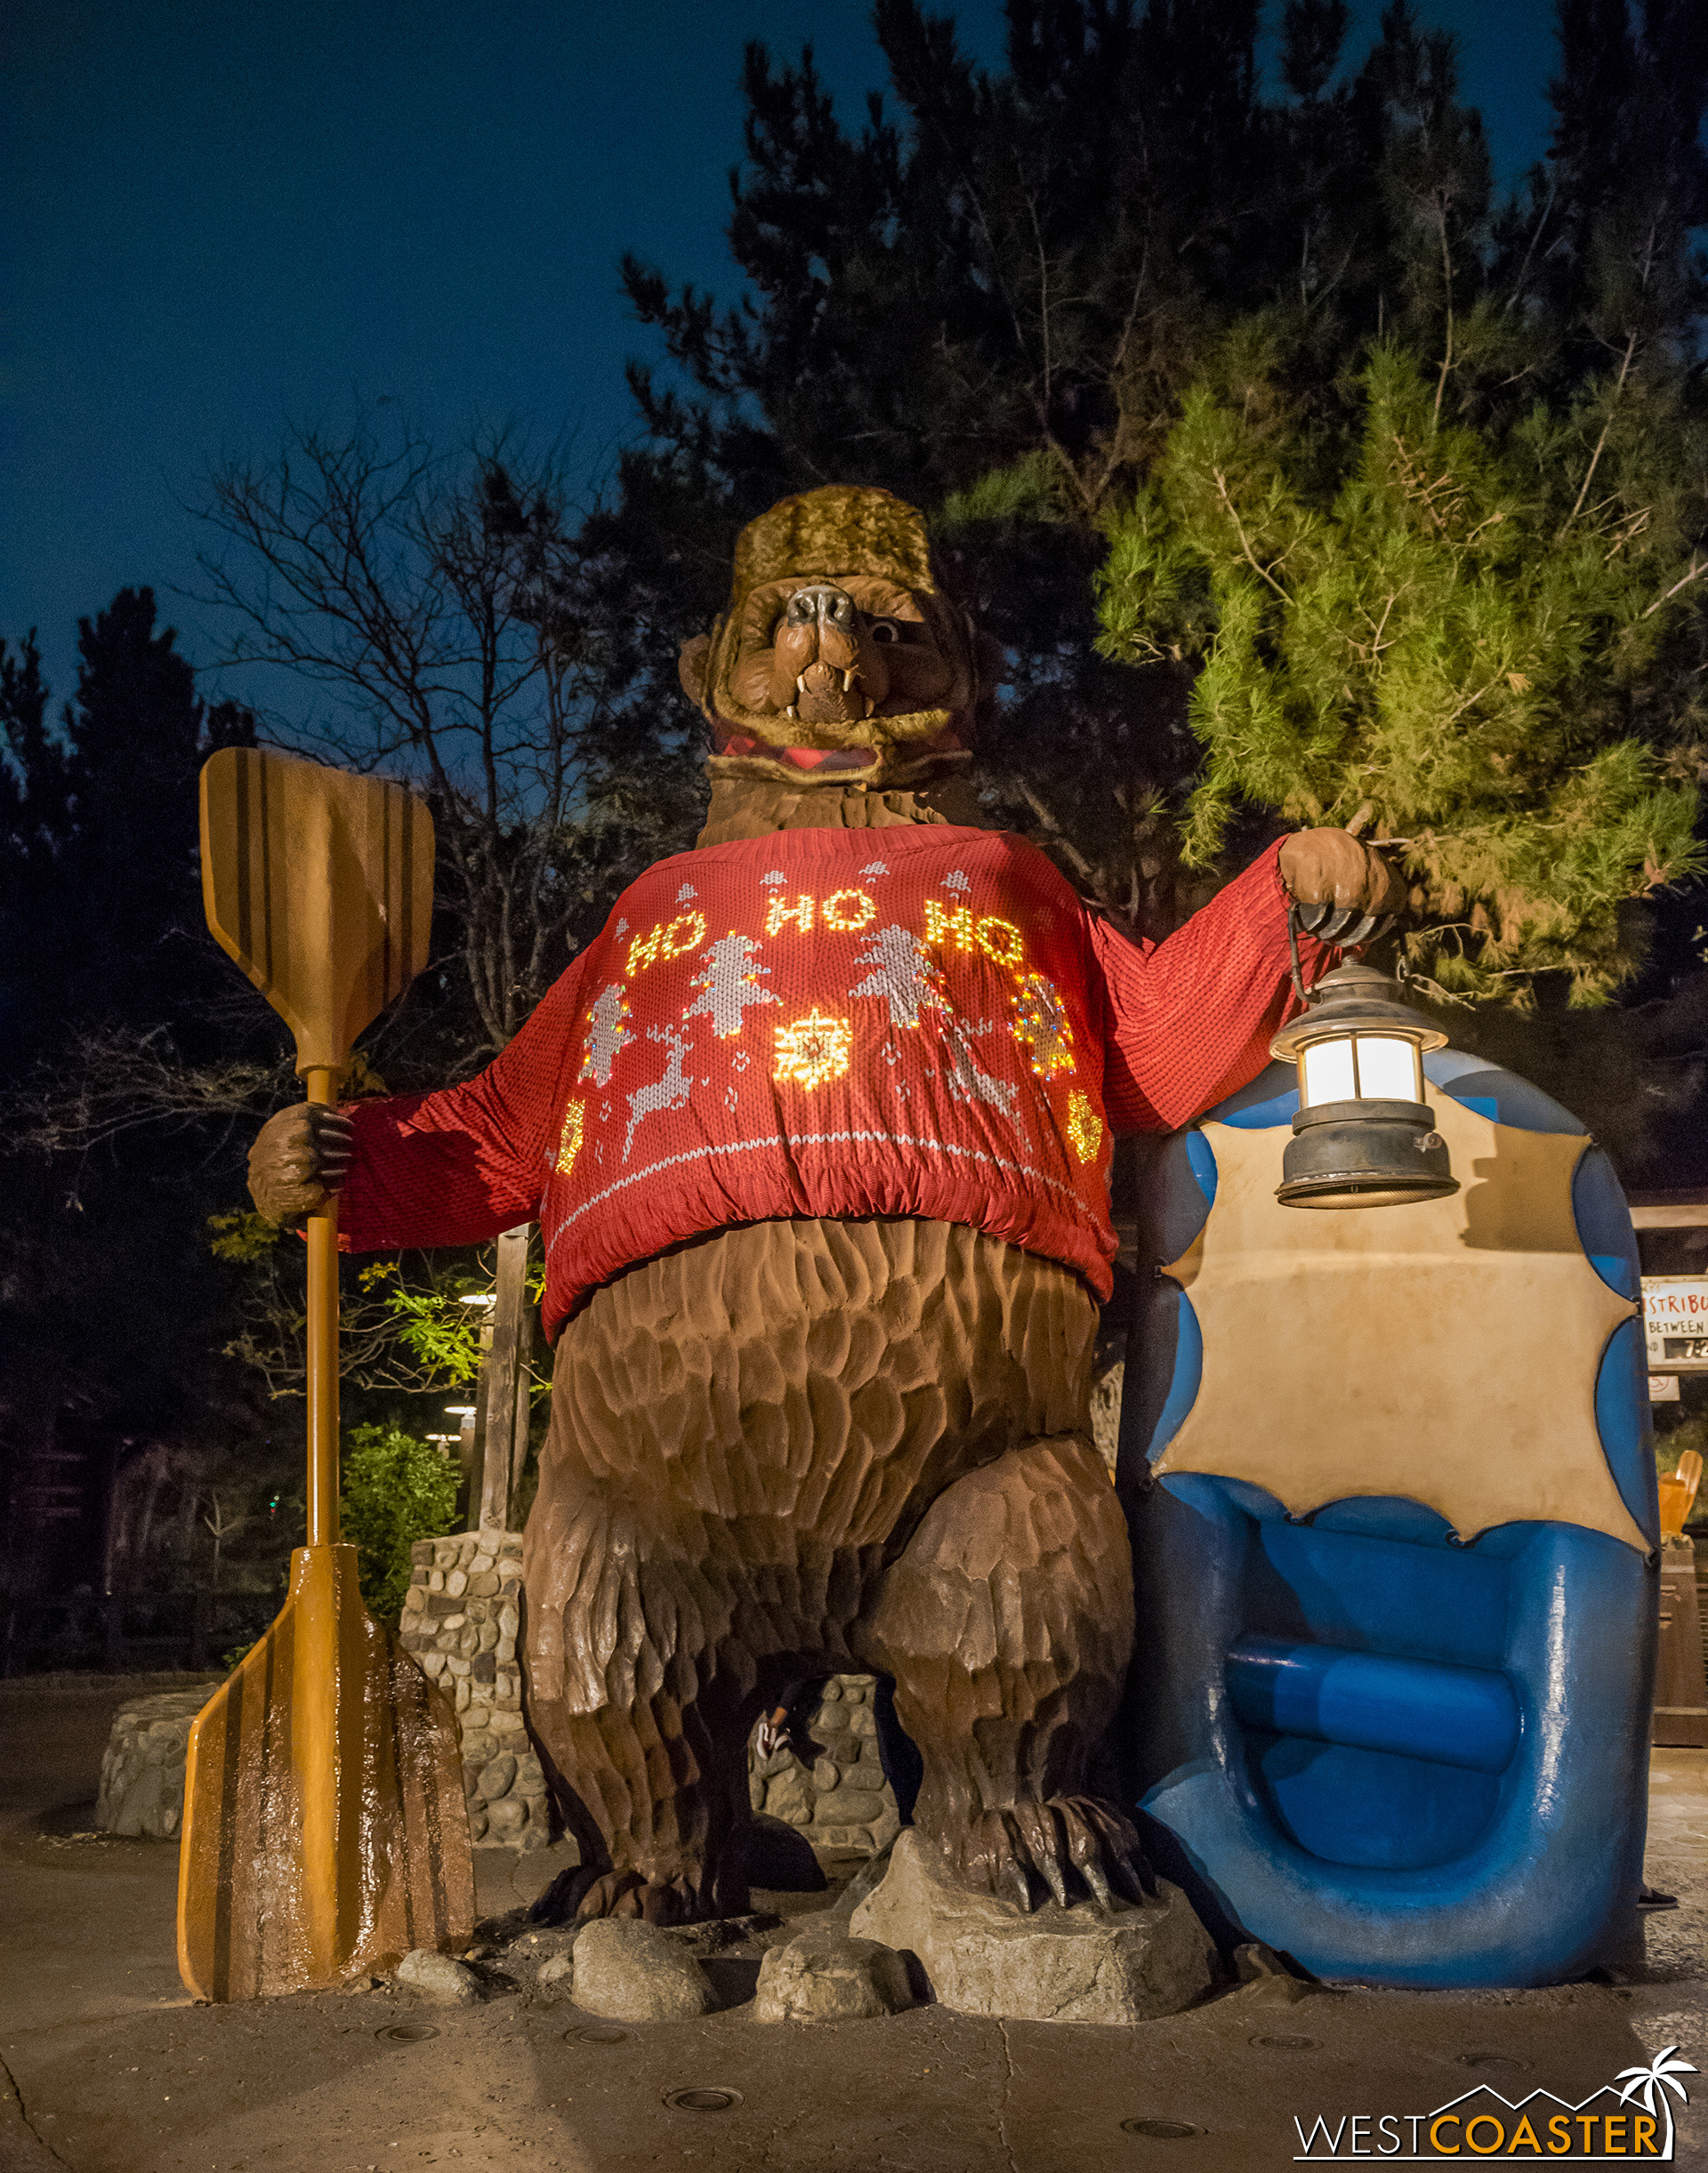 This is literally the best holiday theming in the entire park.  How can you not love a giant ugly Christmas sweater on a giant bear?